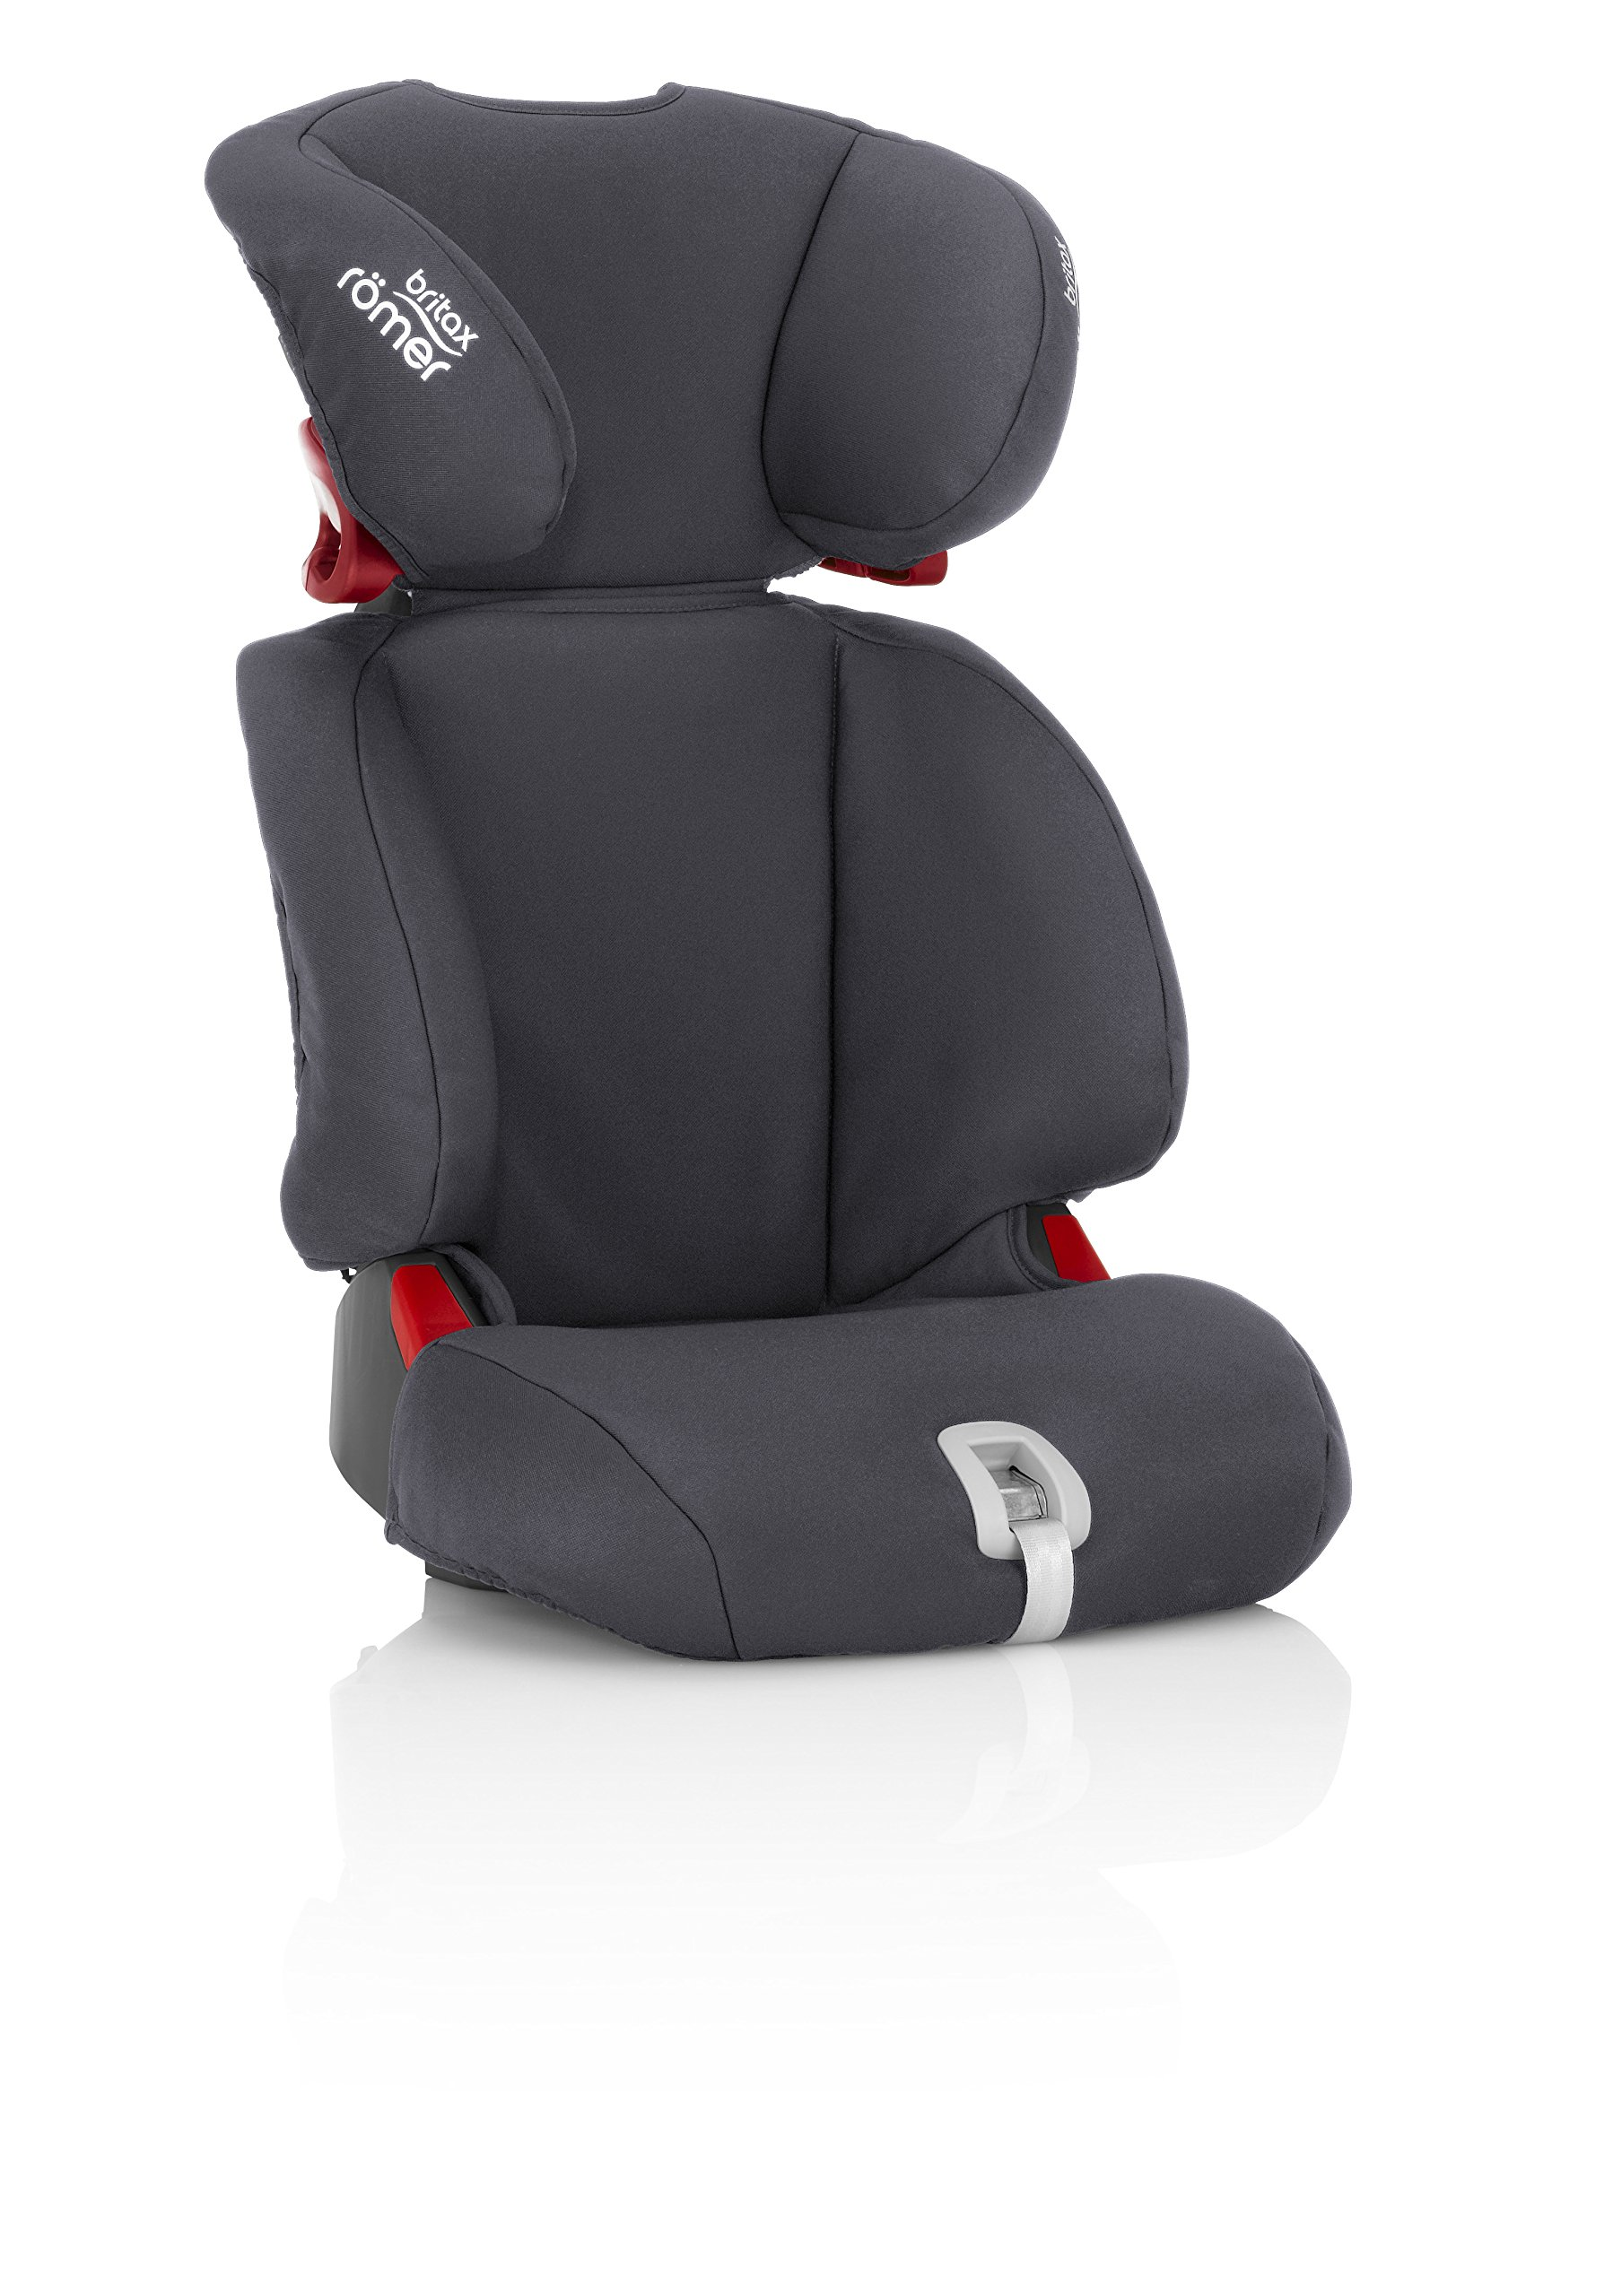 Britax Römer DISCOVERY SL Group 2-3 (15-36kg) Car Seat - Storm Grey  Our high back boosters protect your child in 3 ways: the seat shell provides head to hip protection for your child; the upper and lower belt guides provide correct positioning of the seat belt; and the padded headrest provides safety and comfort. Adjustable backrest - the child seat's adjustable backrest allows you to match the angle of the vehicle seat, providing a better fit and a comfortable position for your child. Easy adjustable headrest - our easy-to-adjust headrest was designed especially for older children, when using the 3-point seat belt to secure them in the car seat. 3